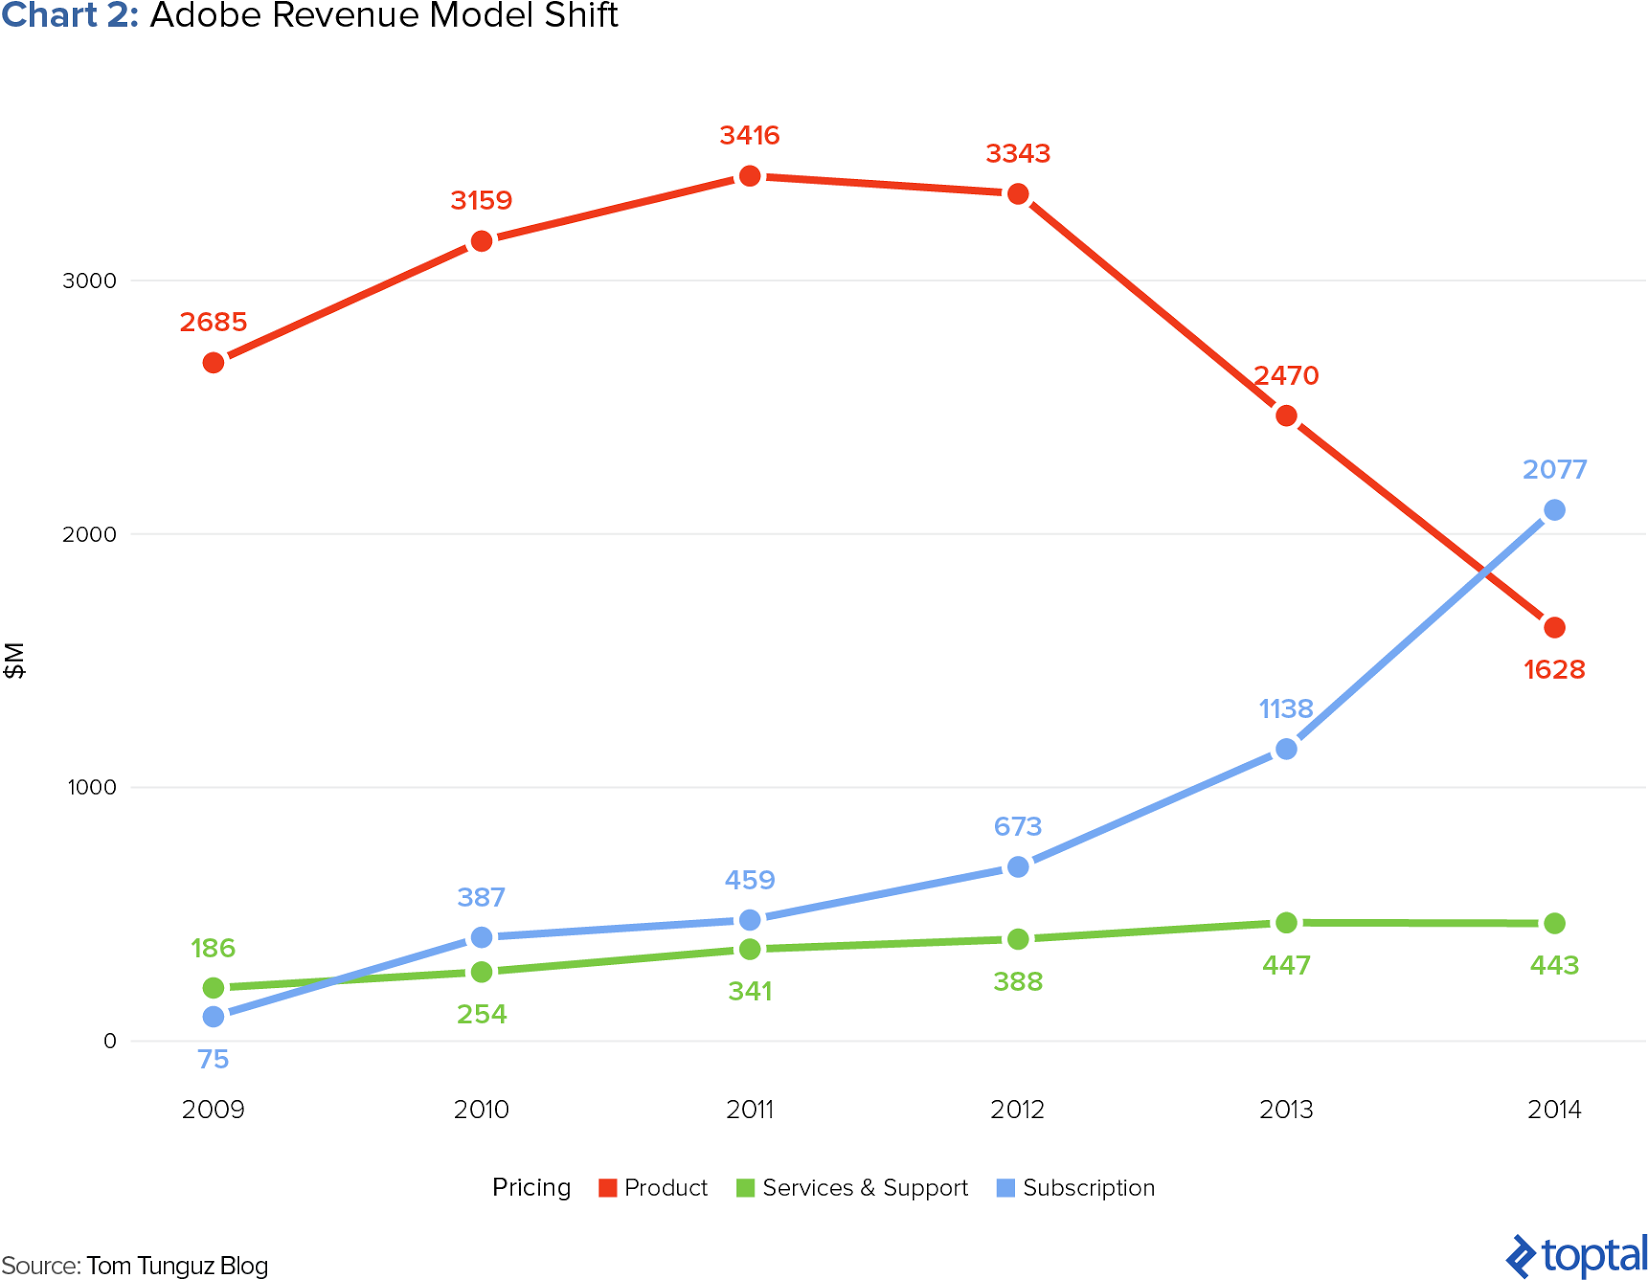 adobe revenue model shift